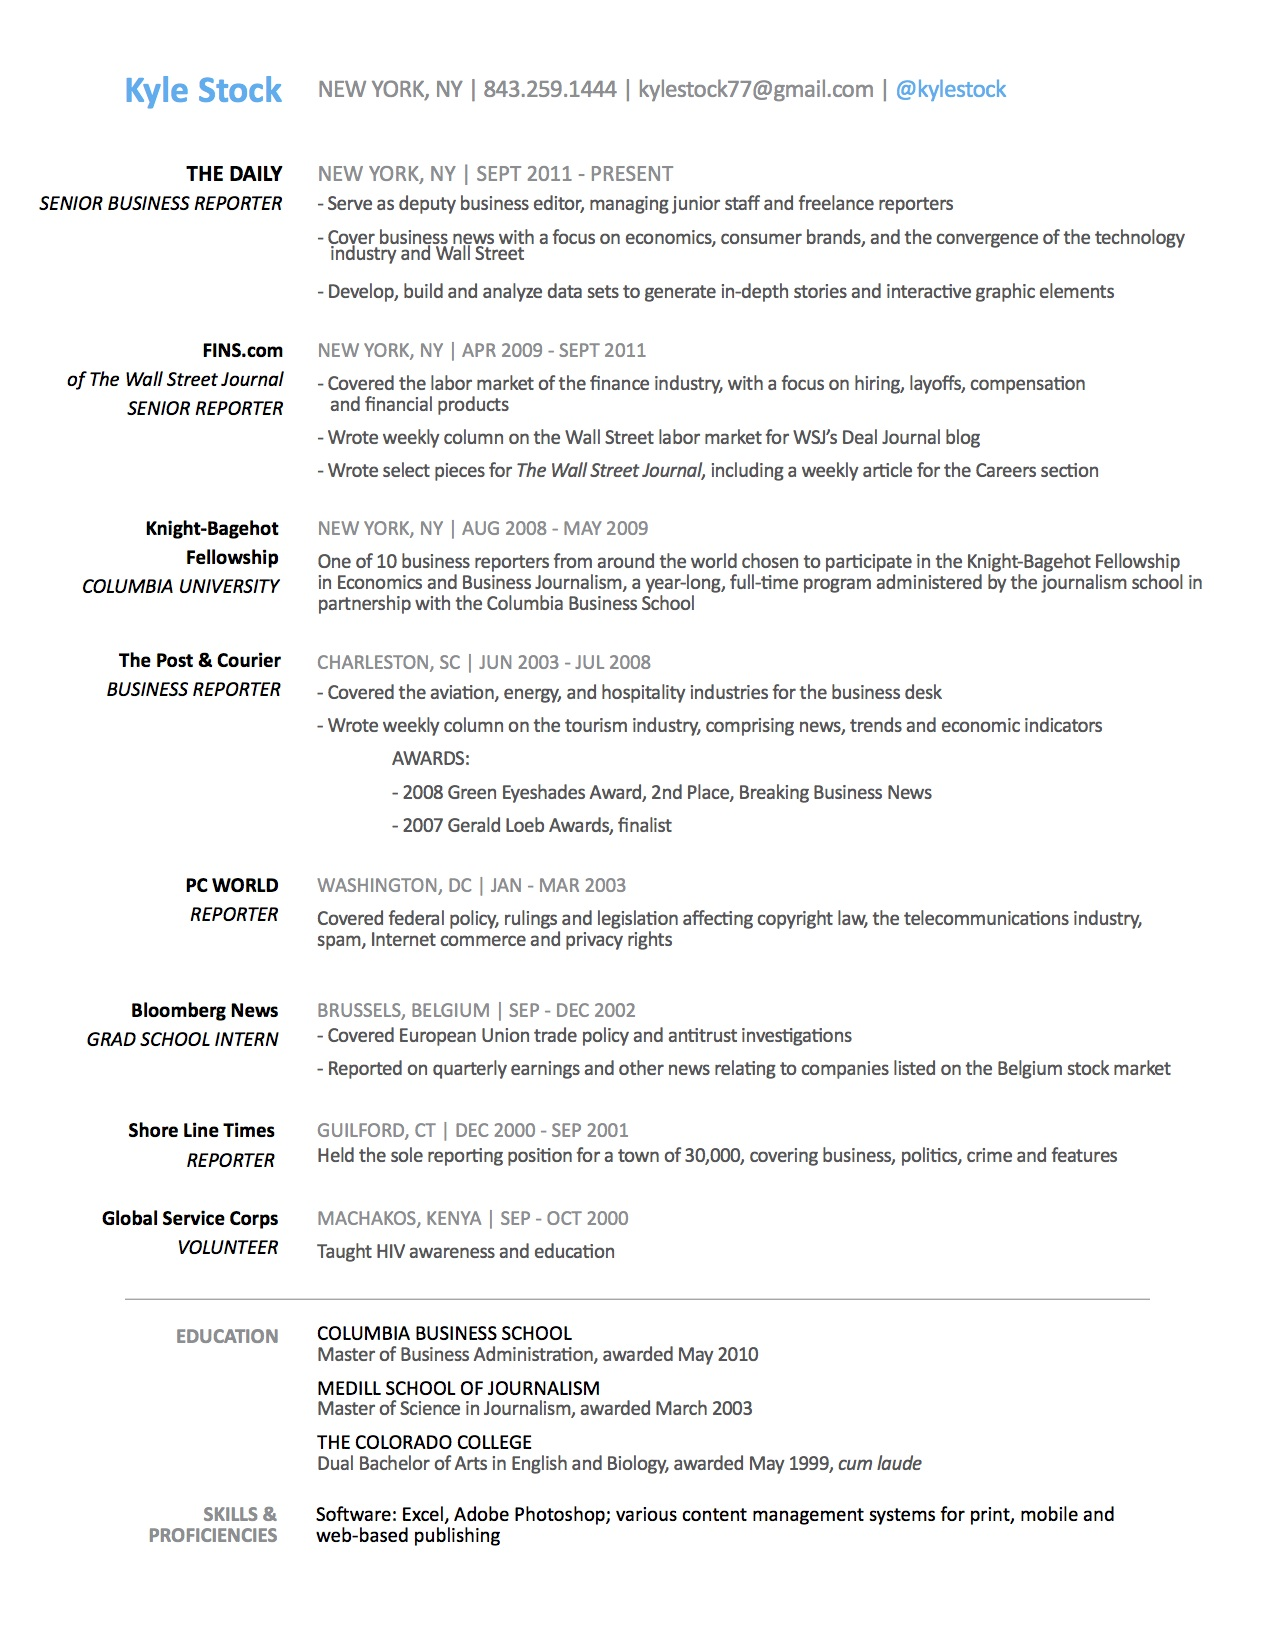 Resume | Kyle Stock Biz